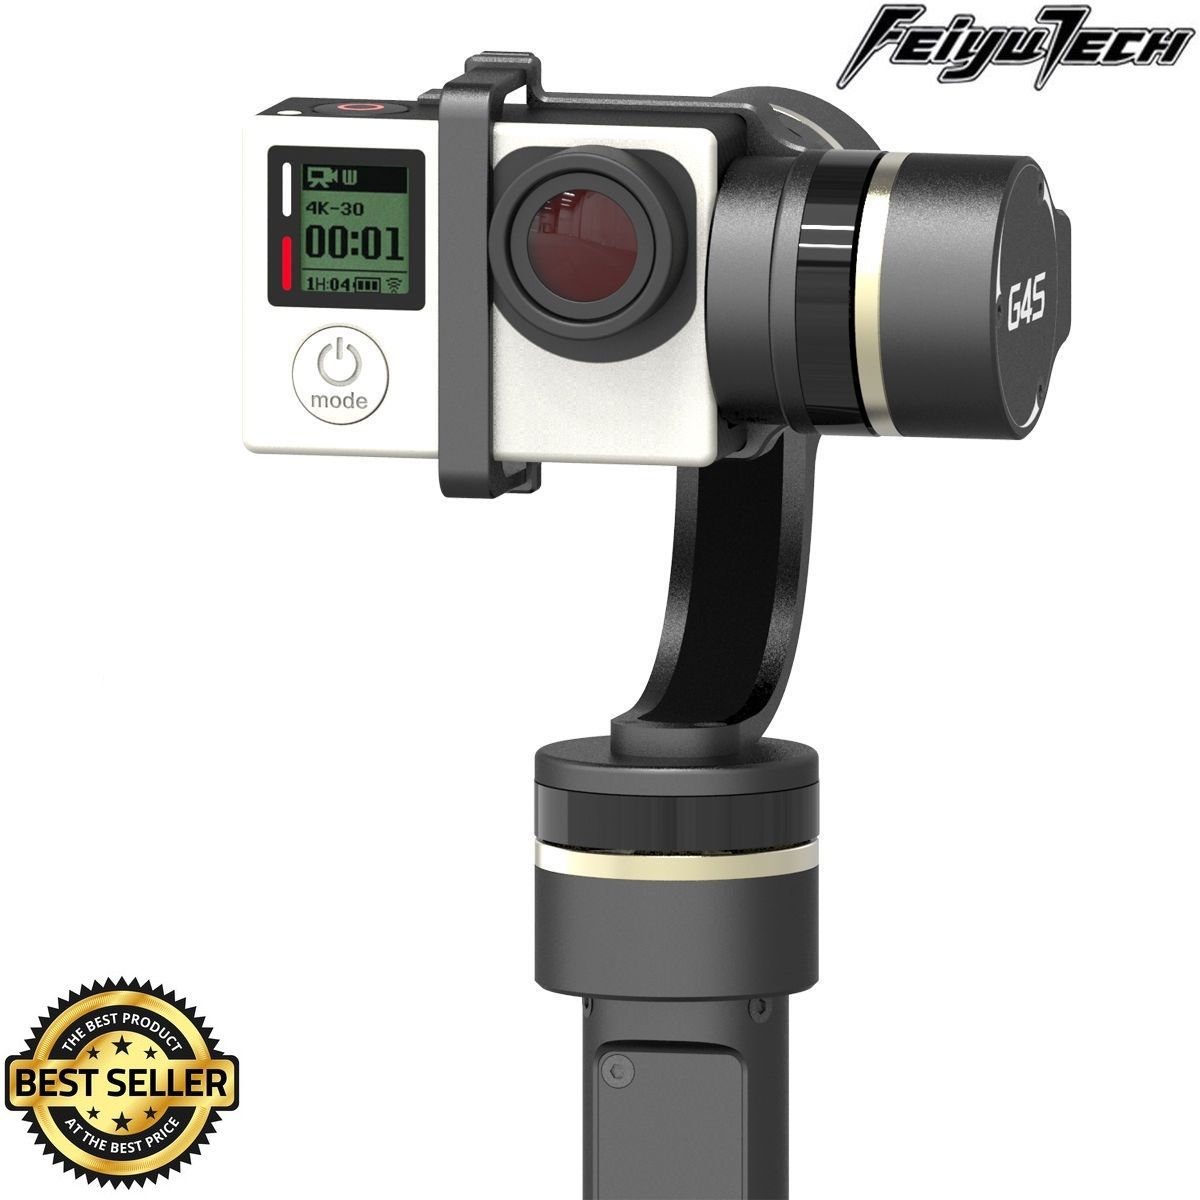 Feiyu Tech FY-G4S 3-Axis 360 Degree Handheld Steady Gimbal for GoPro Hero 3 3+ 4 TV59 feiyu tech fy wg2 3 axis waterproof handheld video stabilizer digital compact camera holder motion steadicam for gopro hero5 4